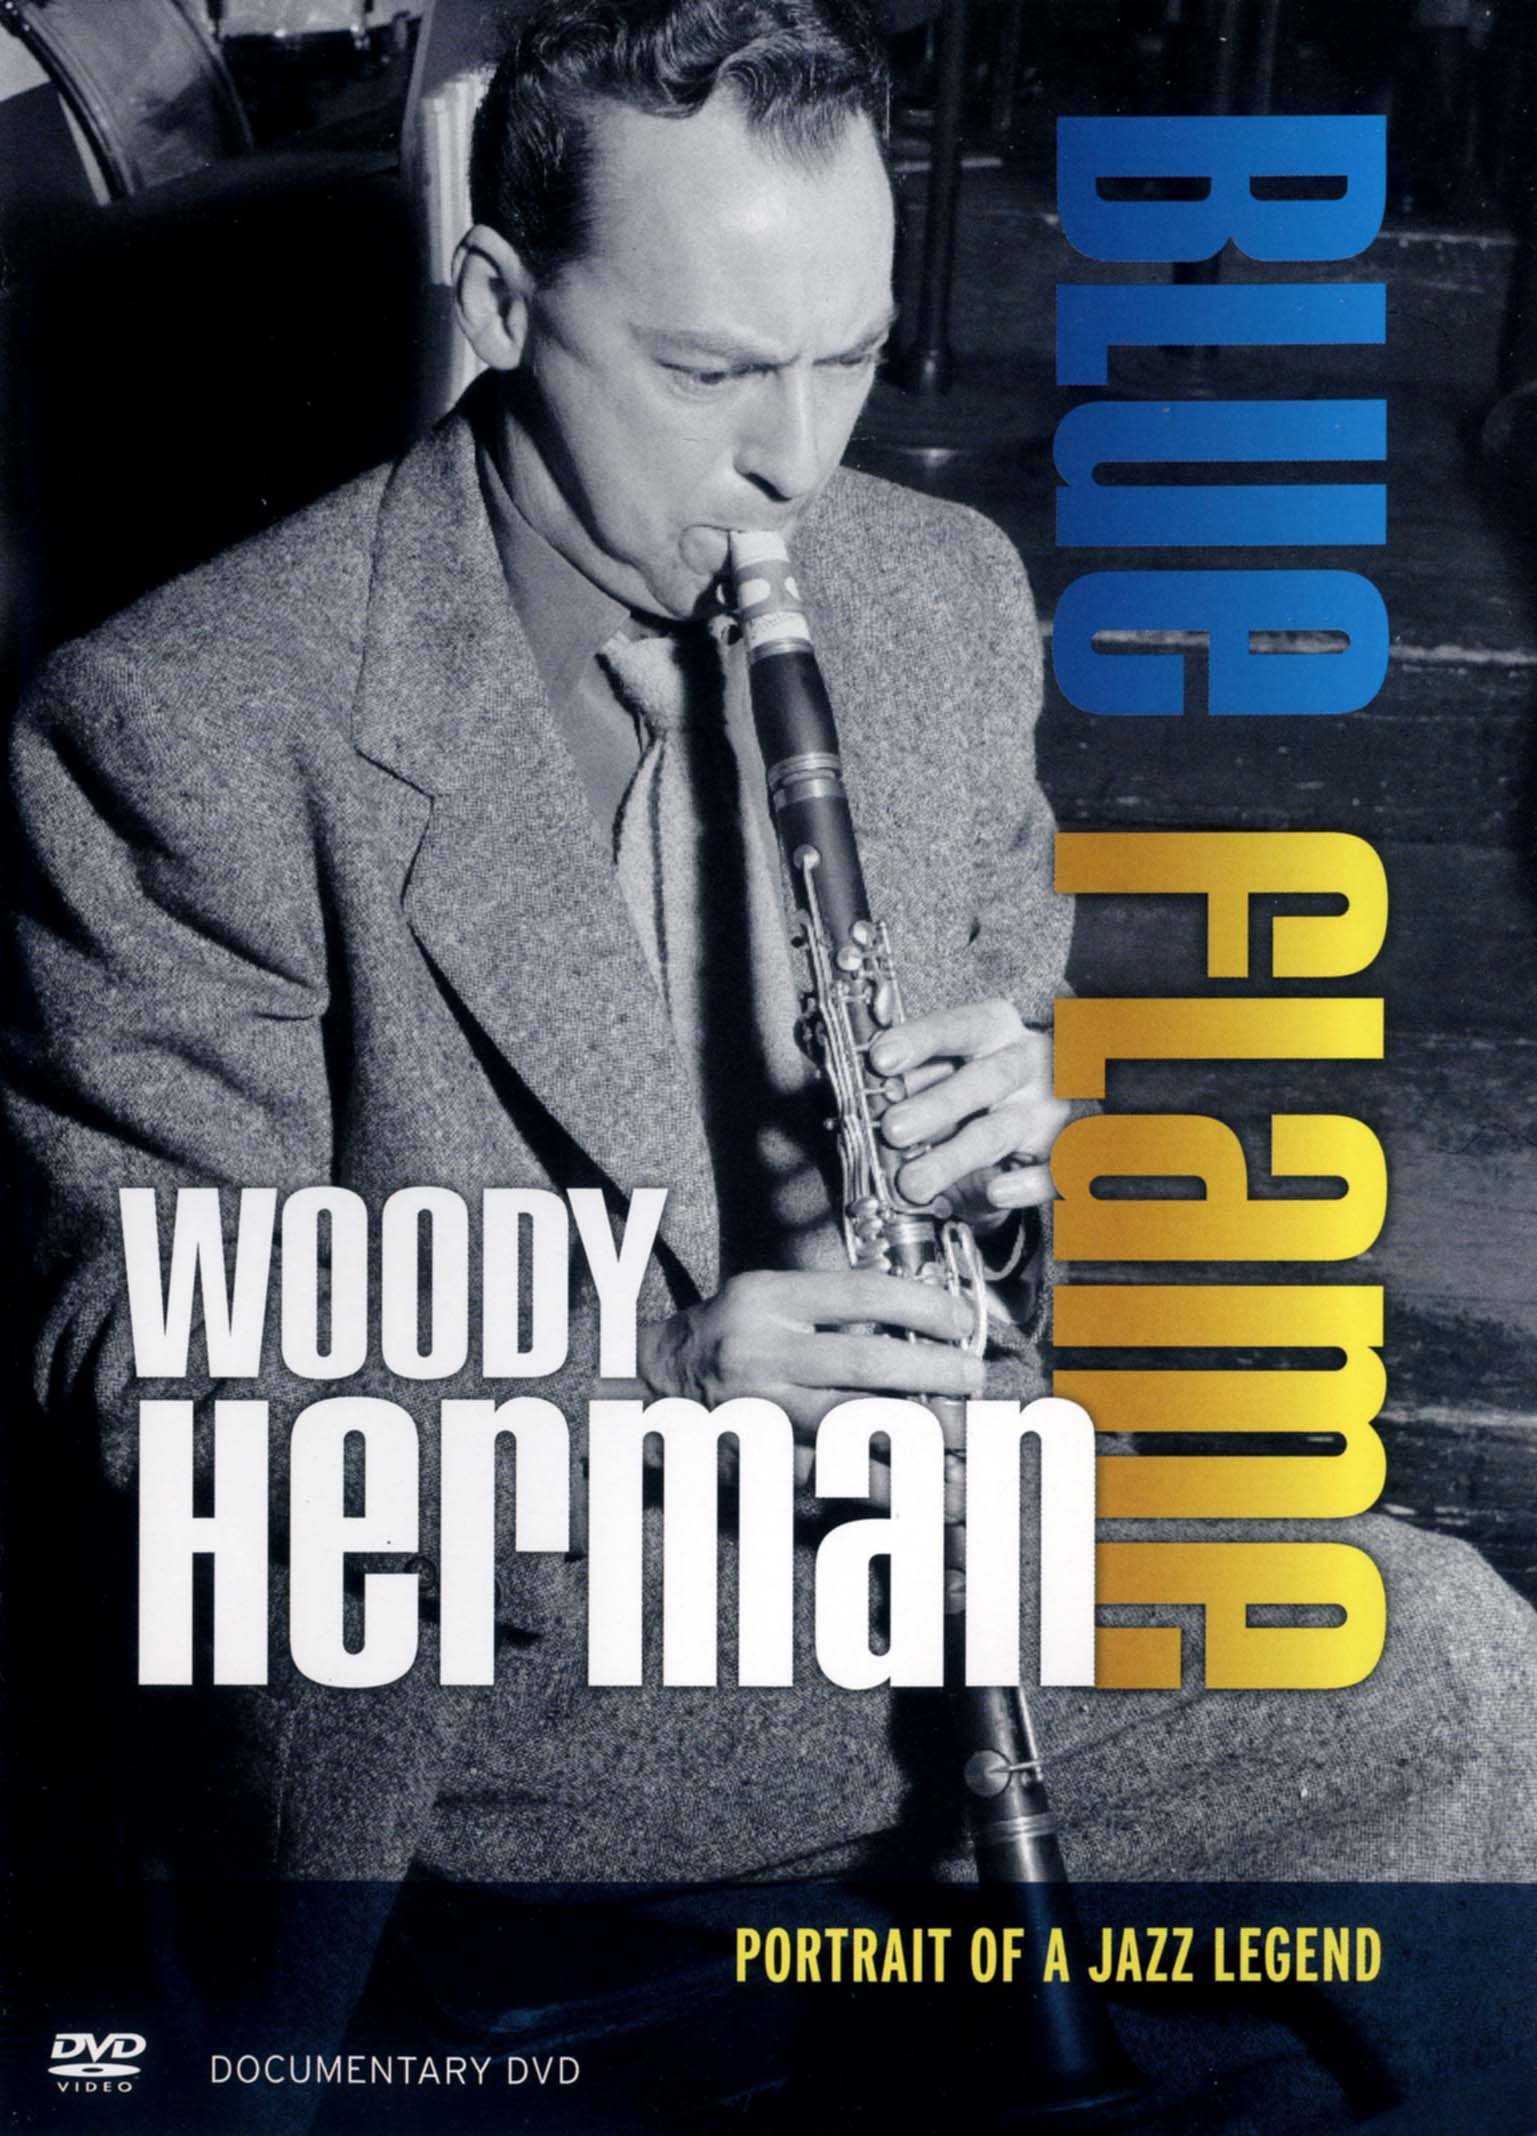 Woody Herman: Blue Flame - Portrait of a Jazz Legend